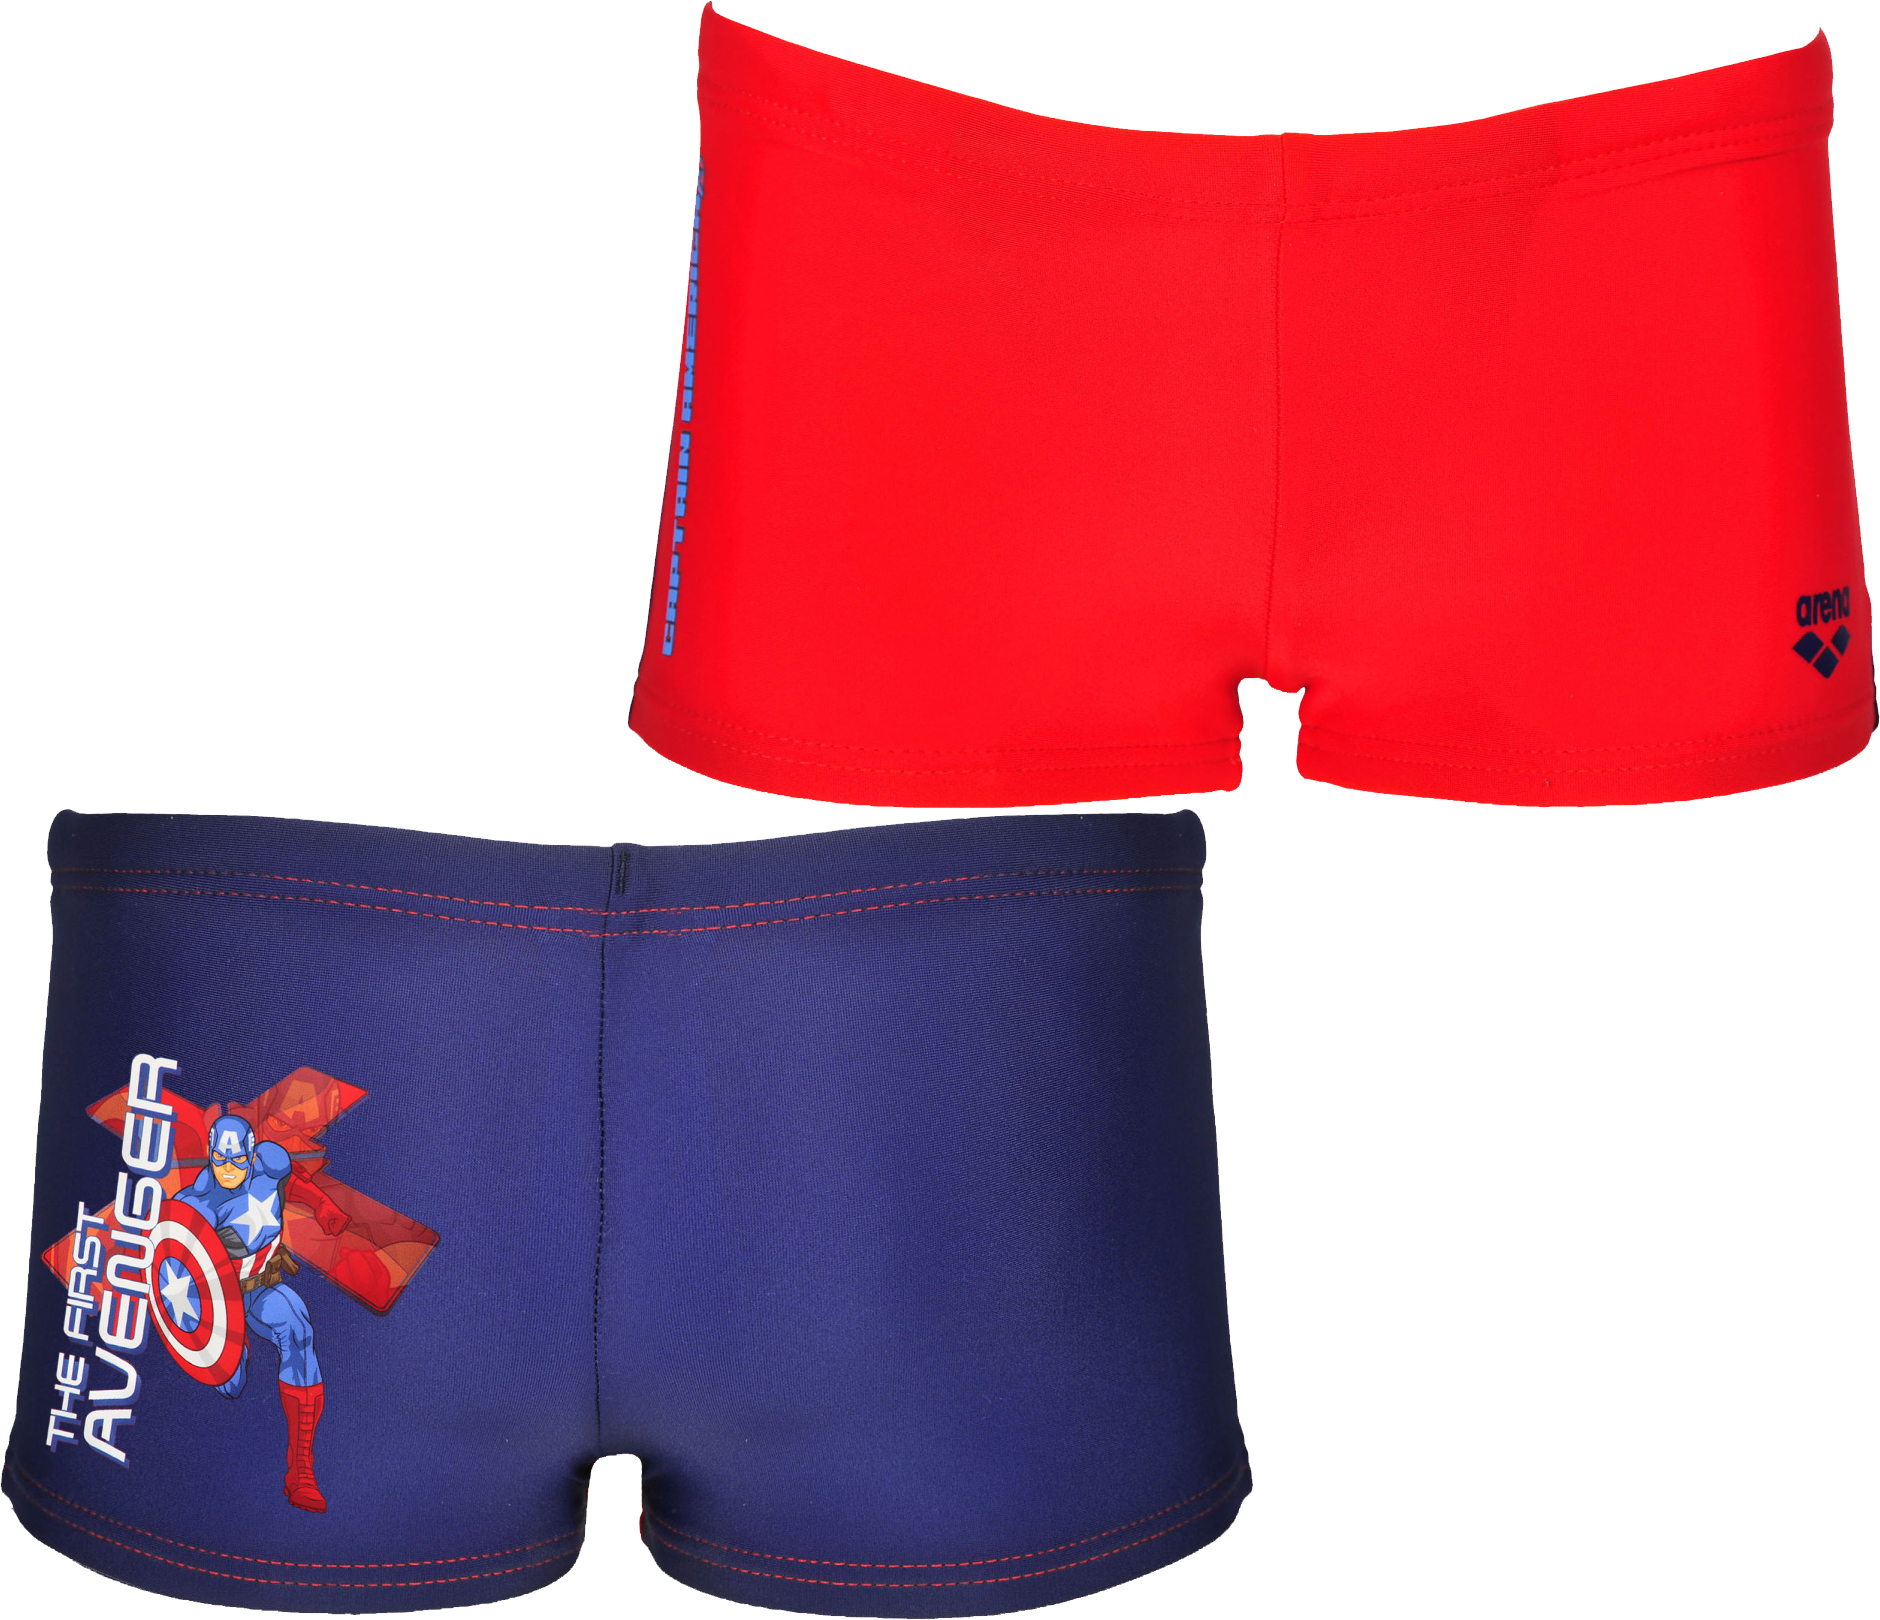 9d685b7705 wiggle.com | Arena - Boy's Captain America Marvel Kids Shorts | Swimming  Shorts